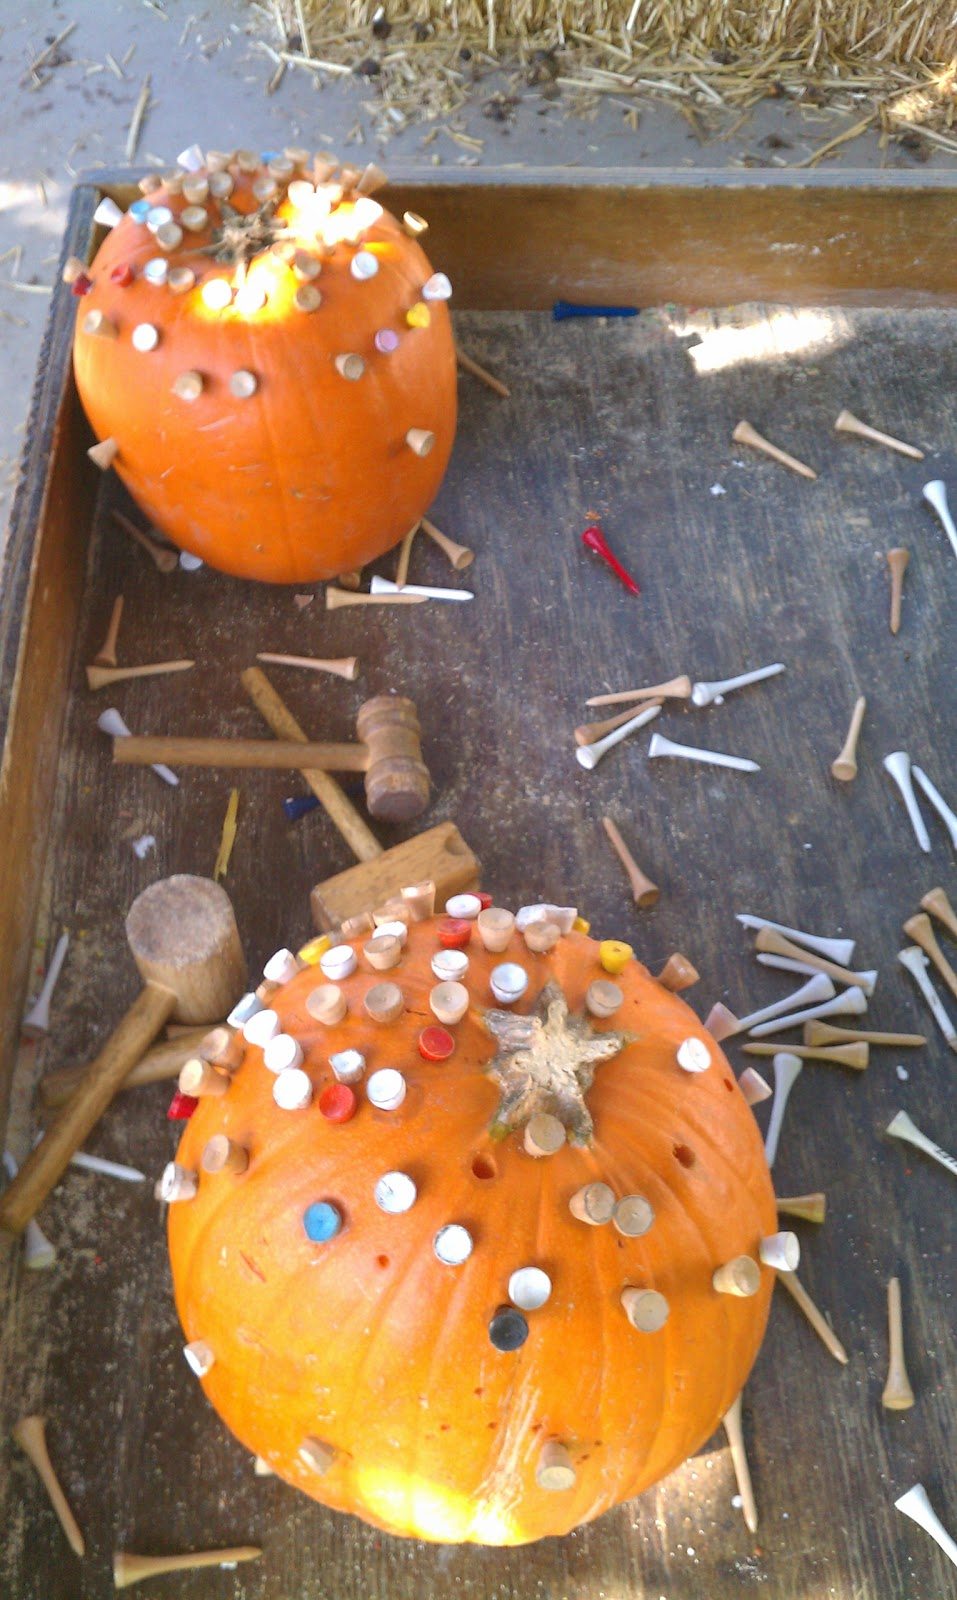 Uncategorized Pumpkin Golf exploring the outdoor classroom pumpkins and golf tees we set out two four small wooden mallets a ton of children really enjoyed this activity they were very succes